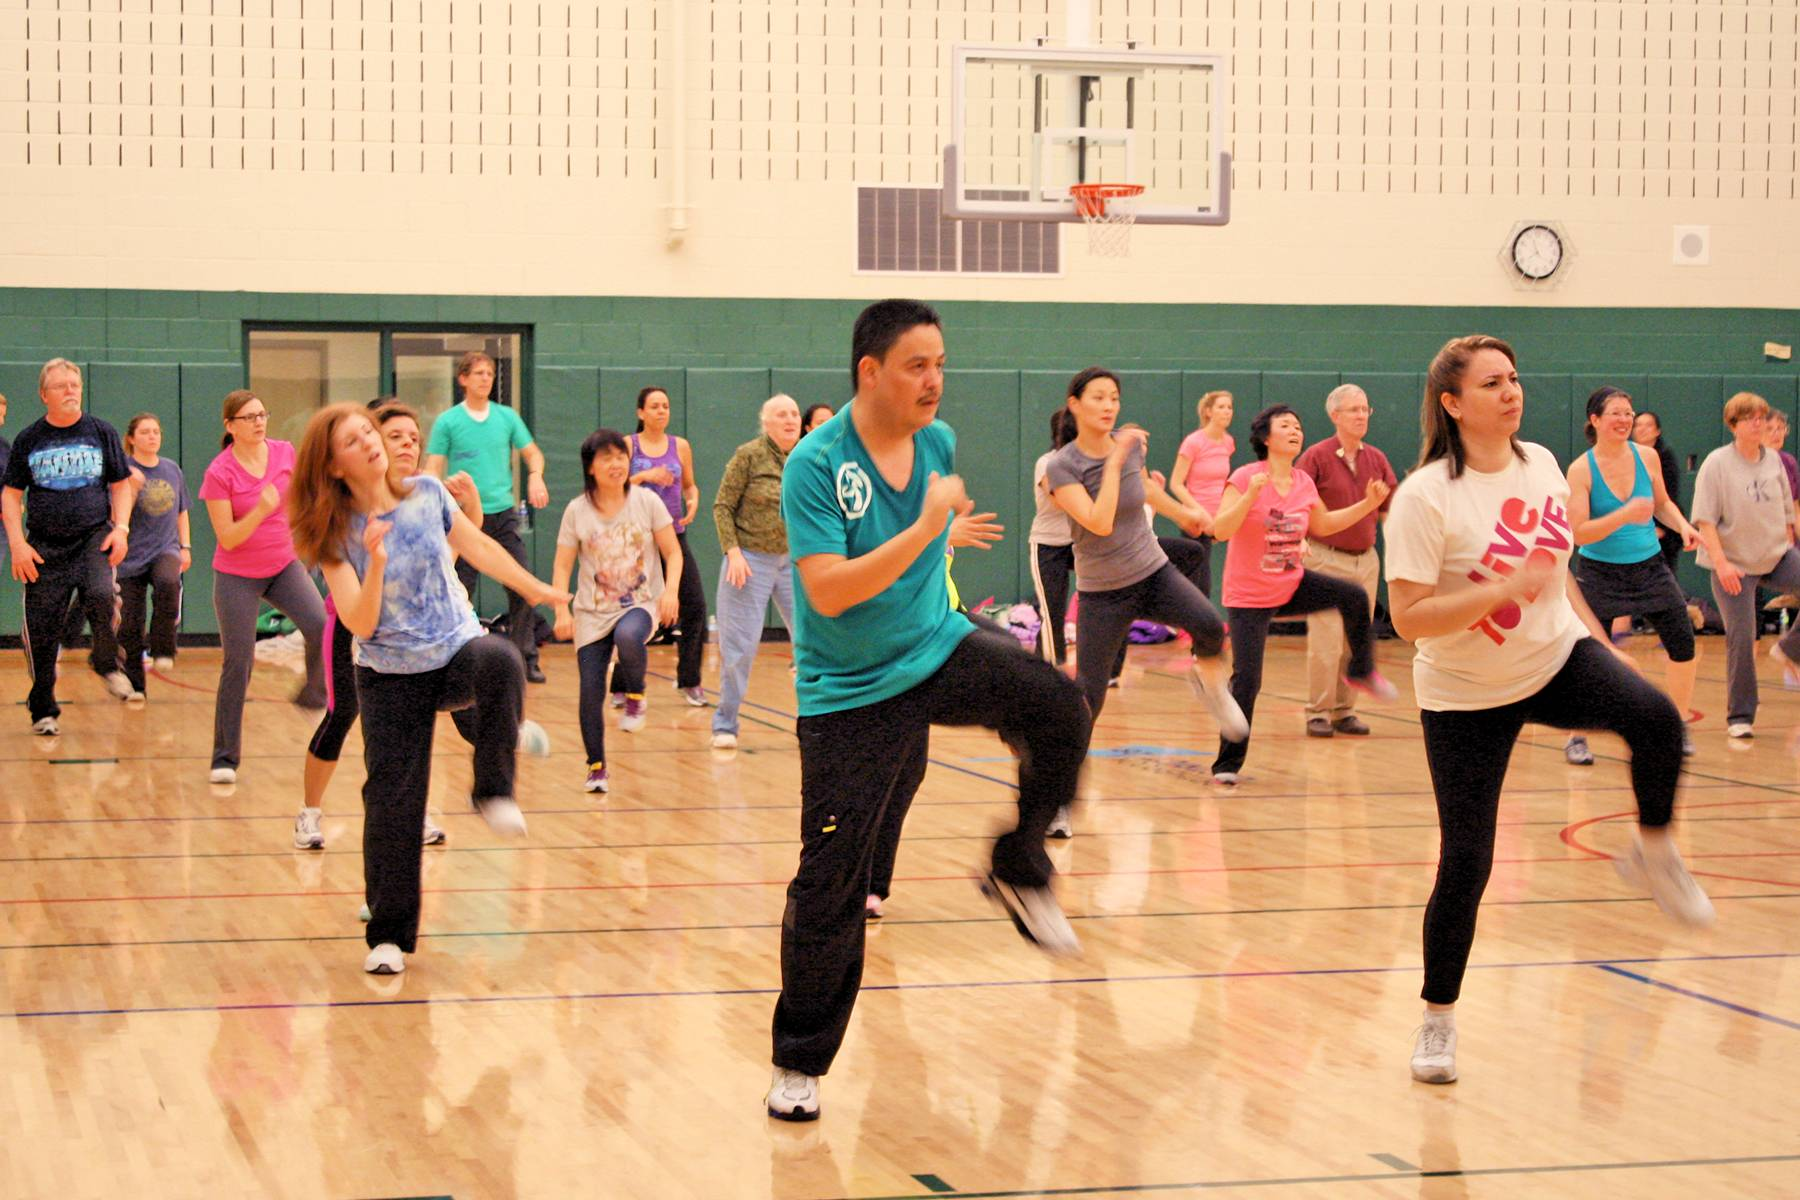 Last year's Zumbathon from the Northbrook Park District will be repeated on March 21.Northbrook Park District